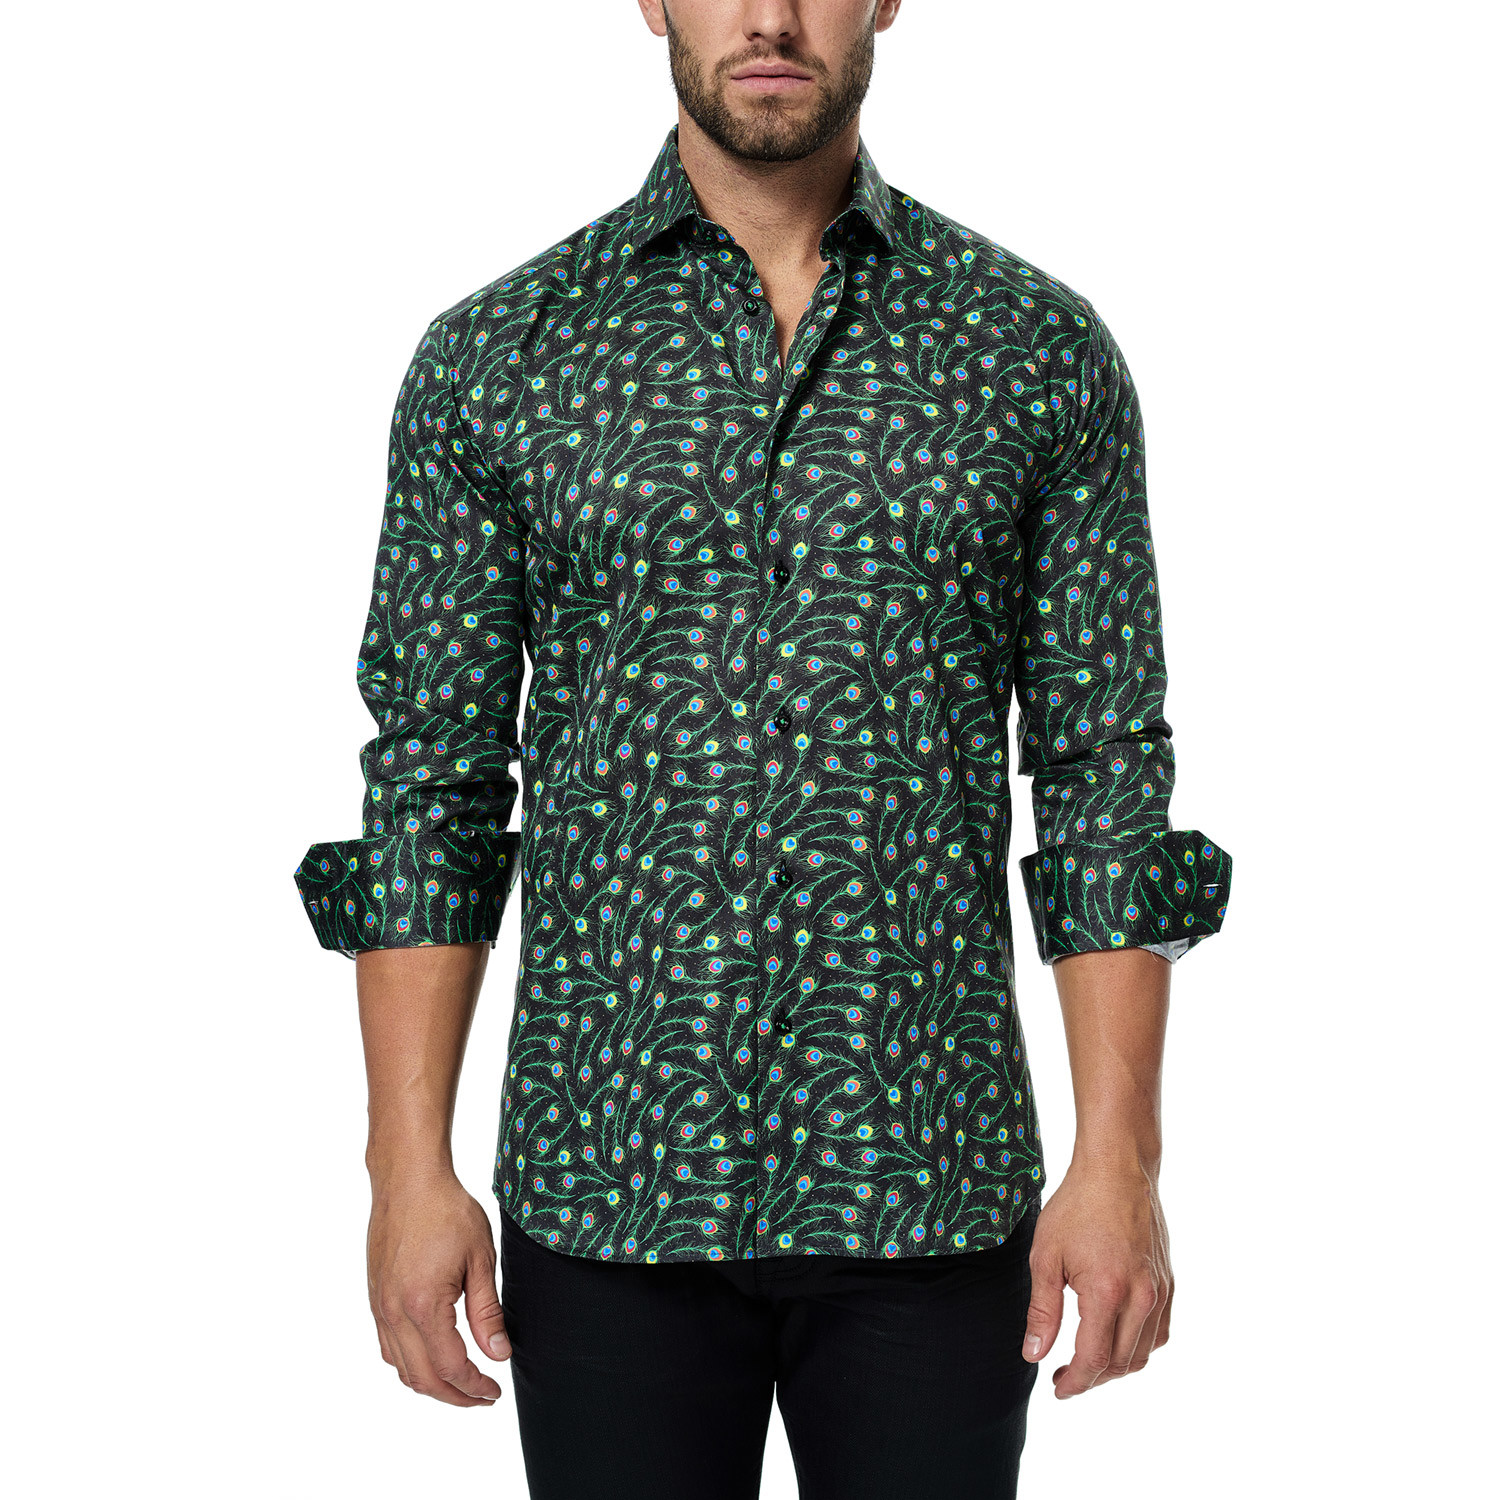 Sharpen your pencils because you're about to be schooled in style by the Lulus Style Education Dark Green Blouse! Sheer woven fabric forms this collarless blouse with a neck tie and full loop button /5(64).